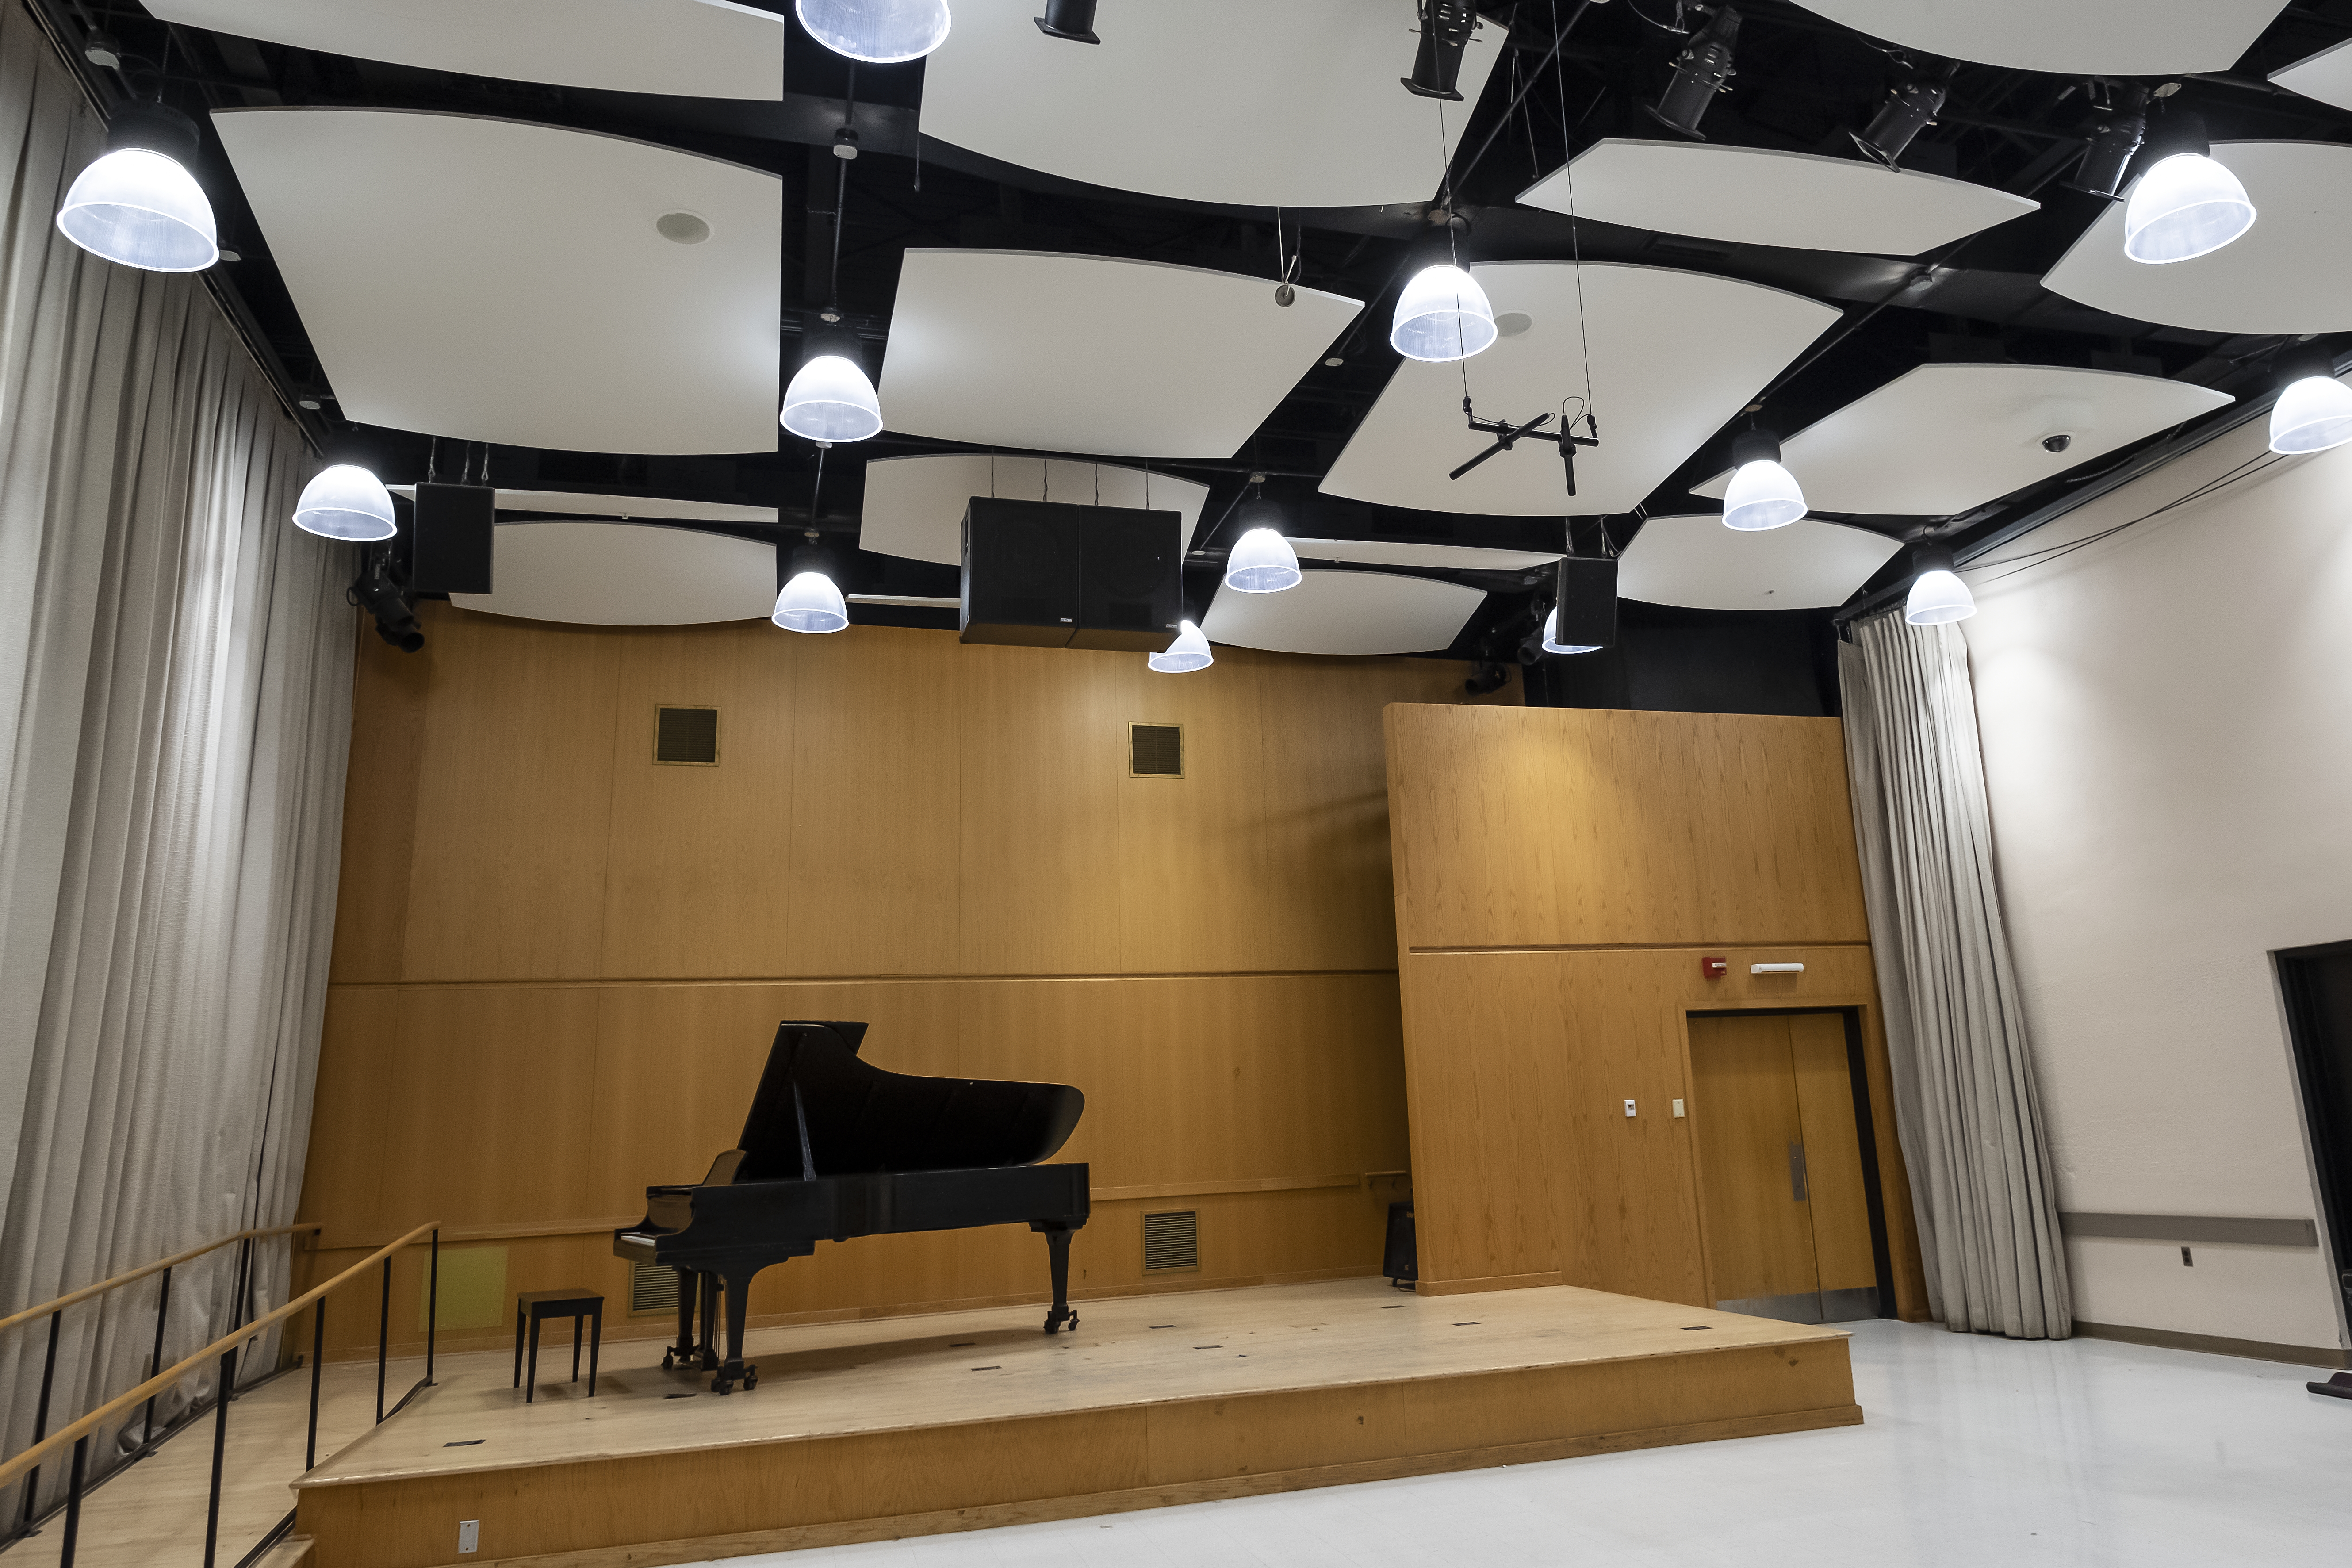 Wooden stage with grand piano on it